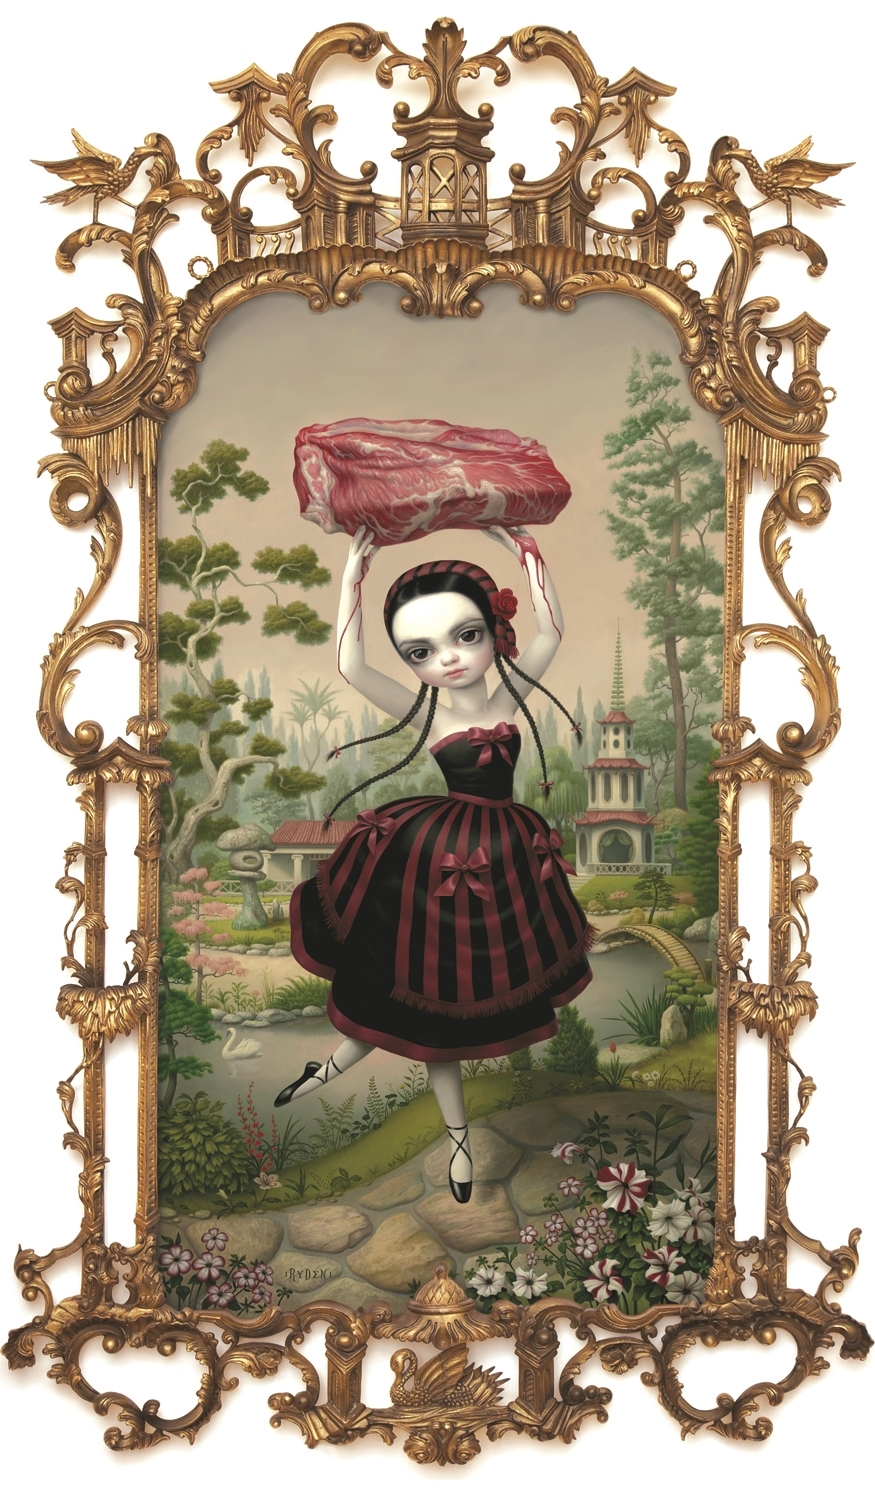 Mark Ryden,  Meat Dancer,  2011, oil on canvas with vintage frame, 75 x 50 inches